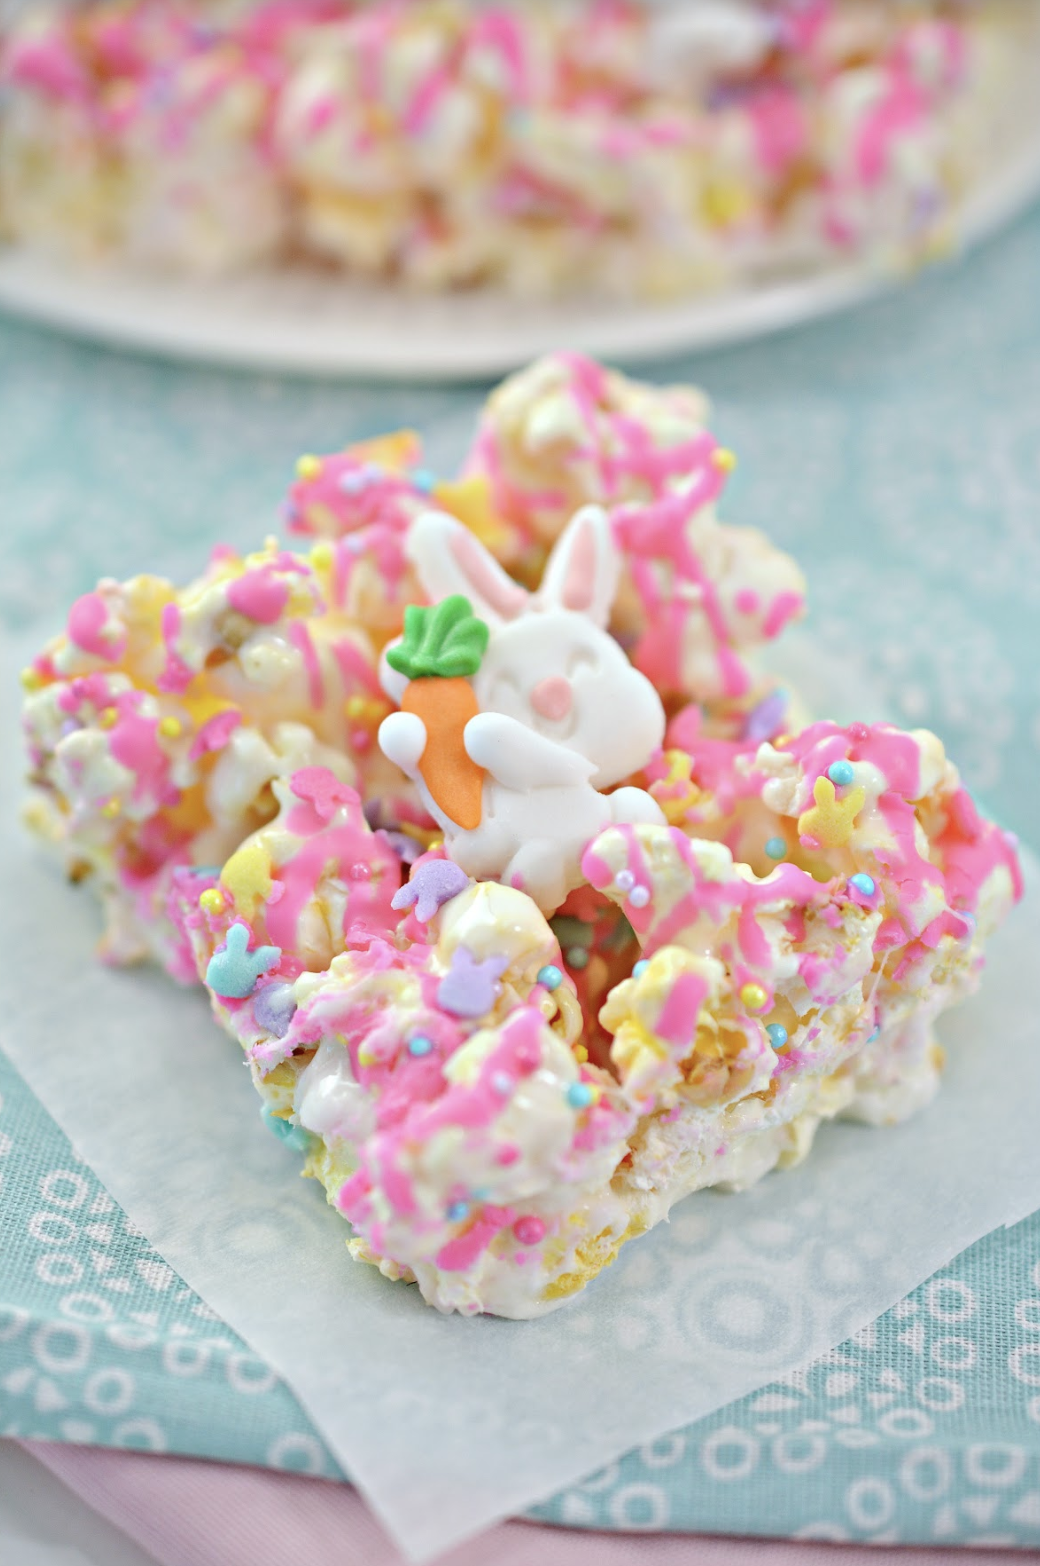 Easter Sprinkles Table Confetti Children/'s Crafts Eggs Chicks Bunnies Random Mix